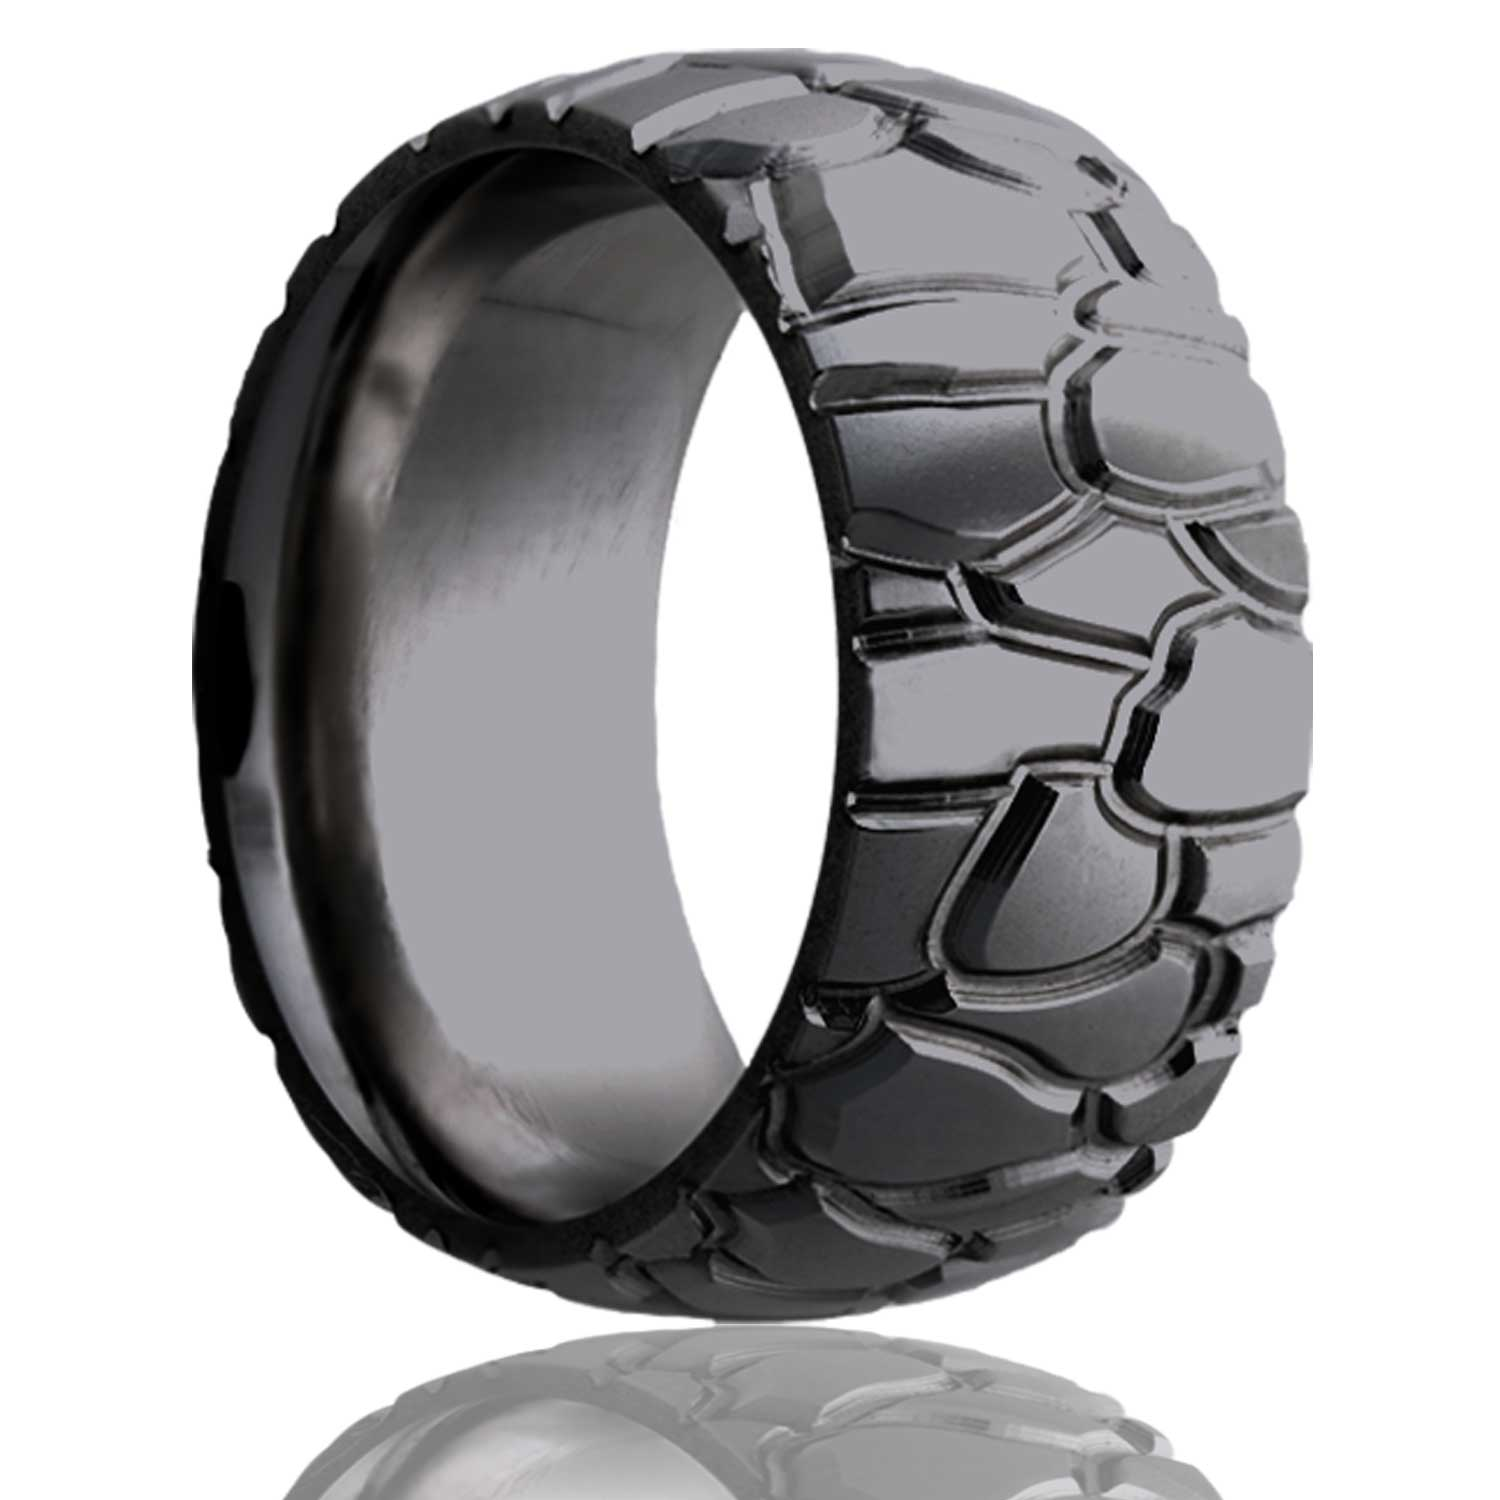 tungsten comfort rings fit band wedding men ring itm carbide blue cabon fiber black silver